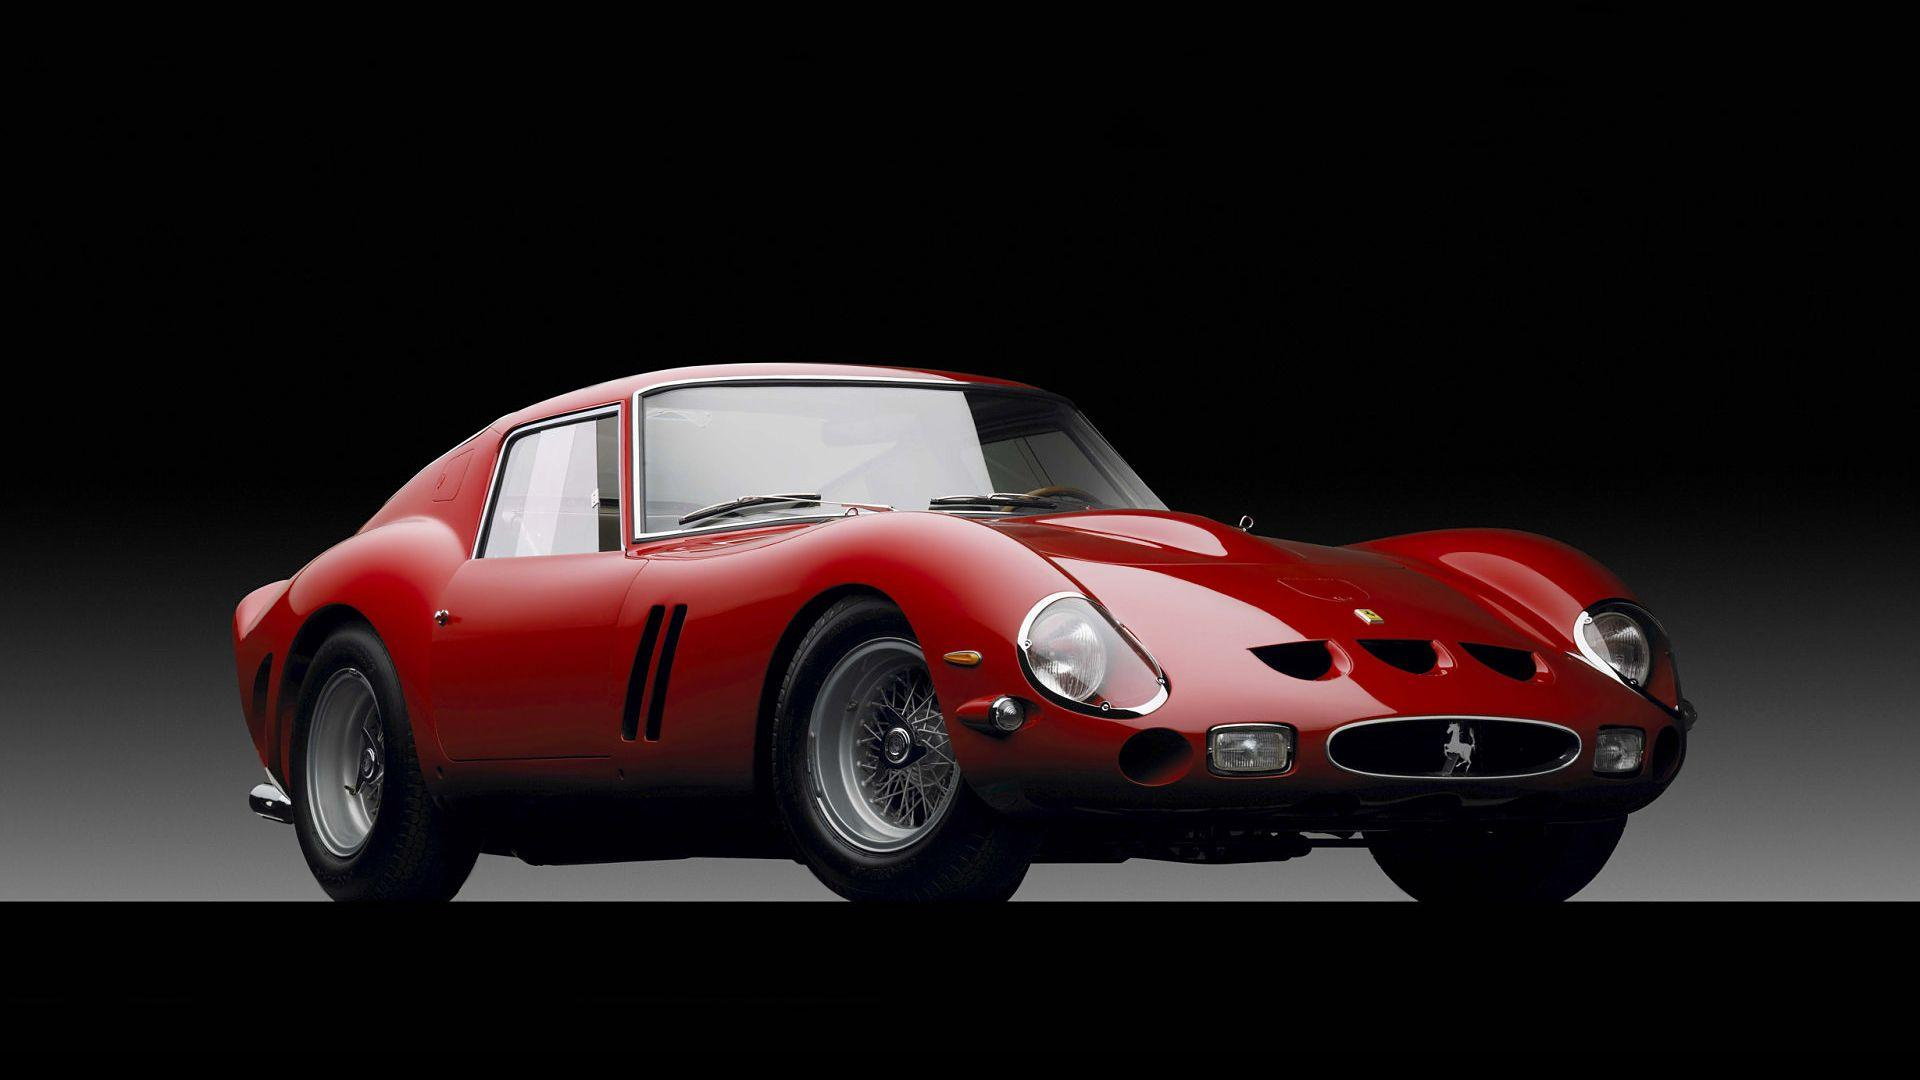 1962-ferrari-250-gto-wallpapers-hd-images-wsupercars